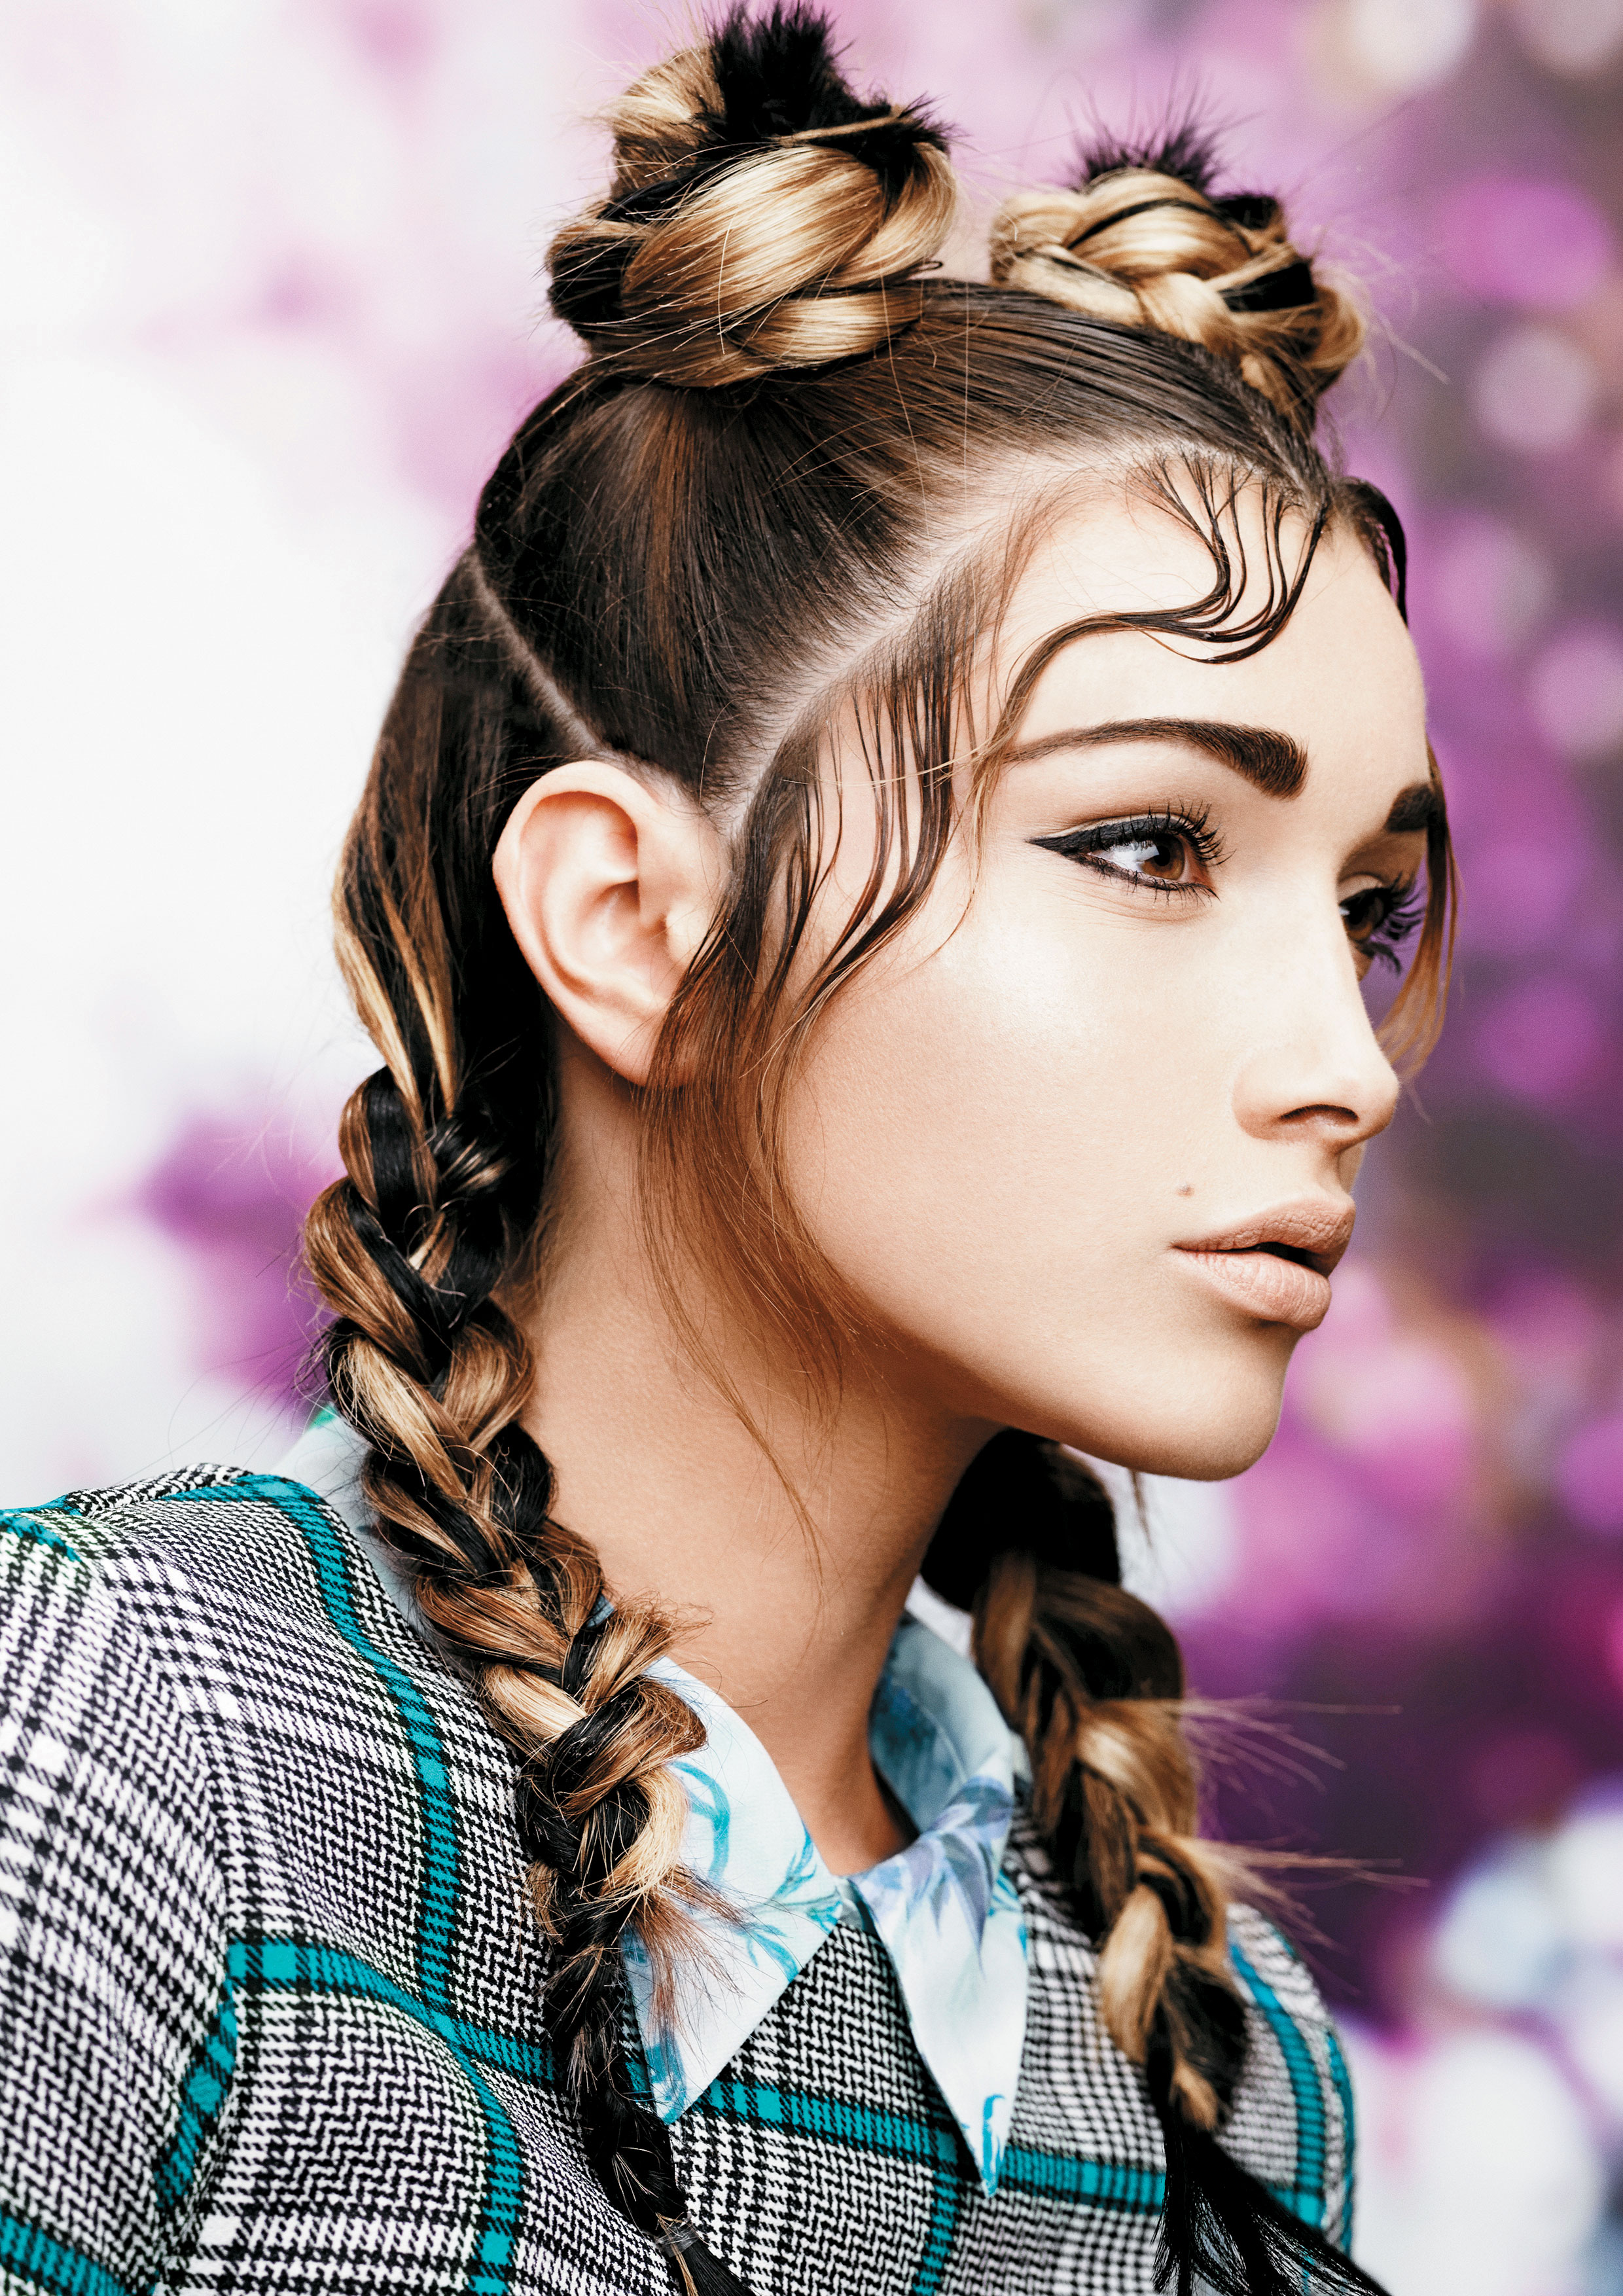 Cornrows, braids and plaits were all over the runways during Spring Fashion Week, but Masci took that trend one step further by knotting the hair. Session stylist Kevin Murphy was so impressed that he asked to borrow her technique and used it on Australian model Ashley Hart the next day.